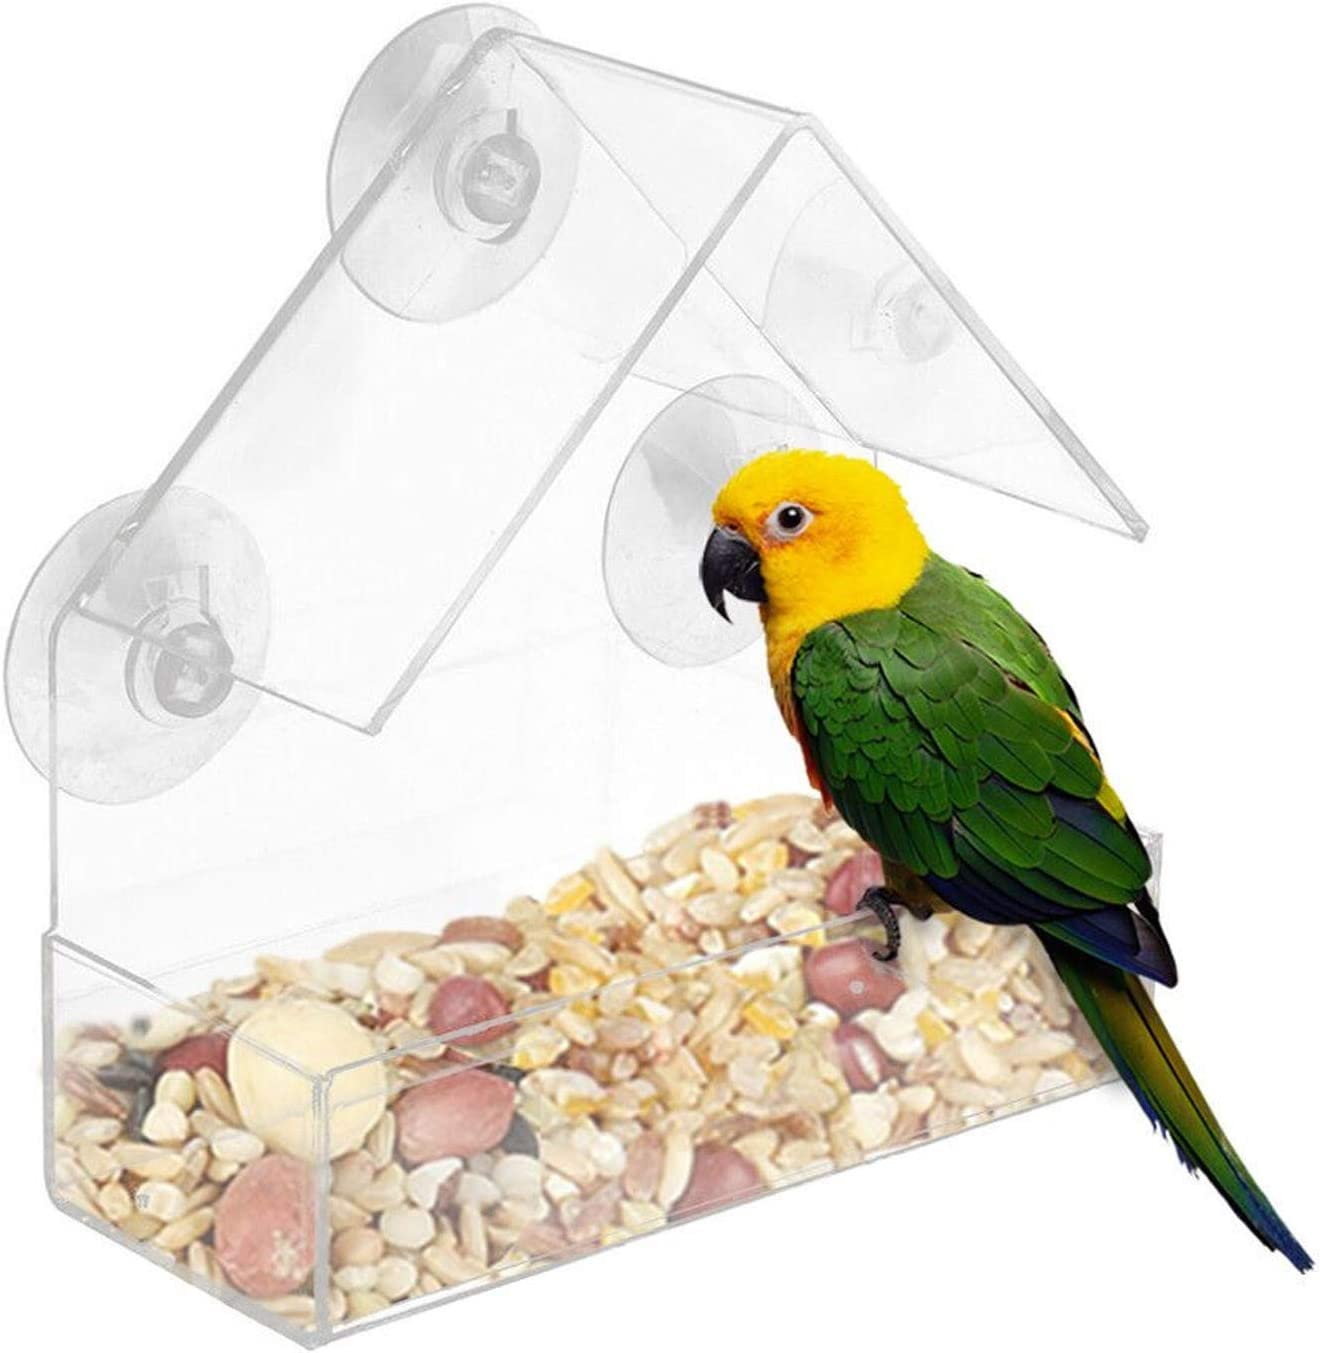 YADEOU Hanging Wild Bird Feeder, Clear Weatherproof Polycarbonat Glass Window Viewing Hotel Table Seed Peanut Hanging Suction